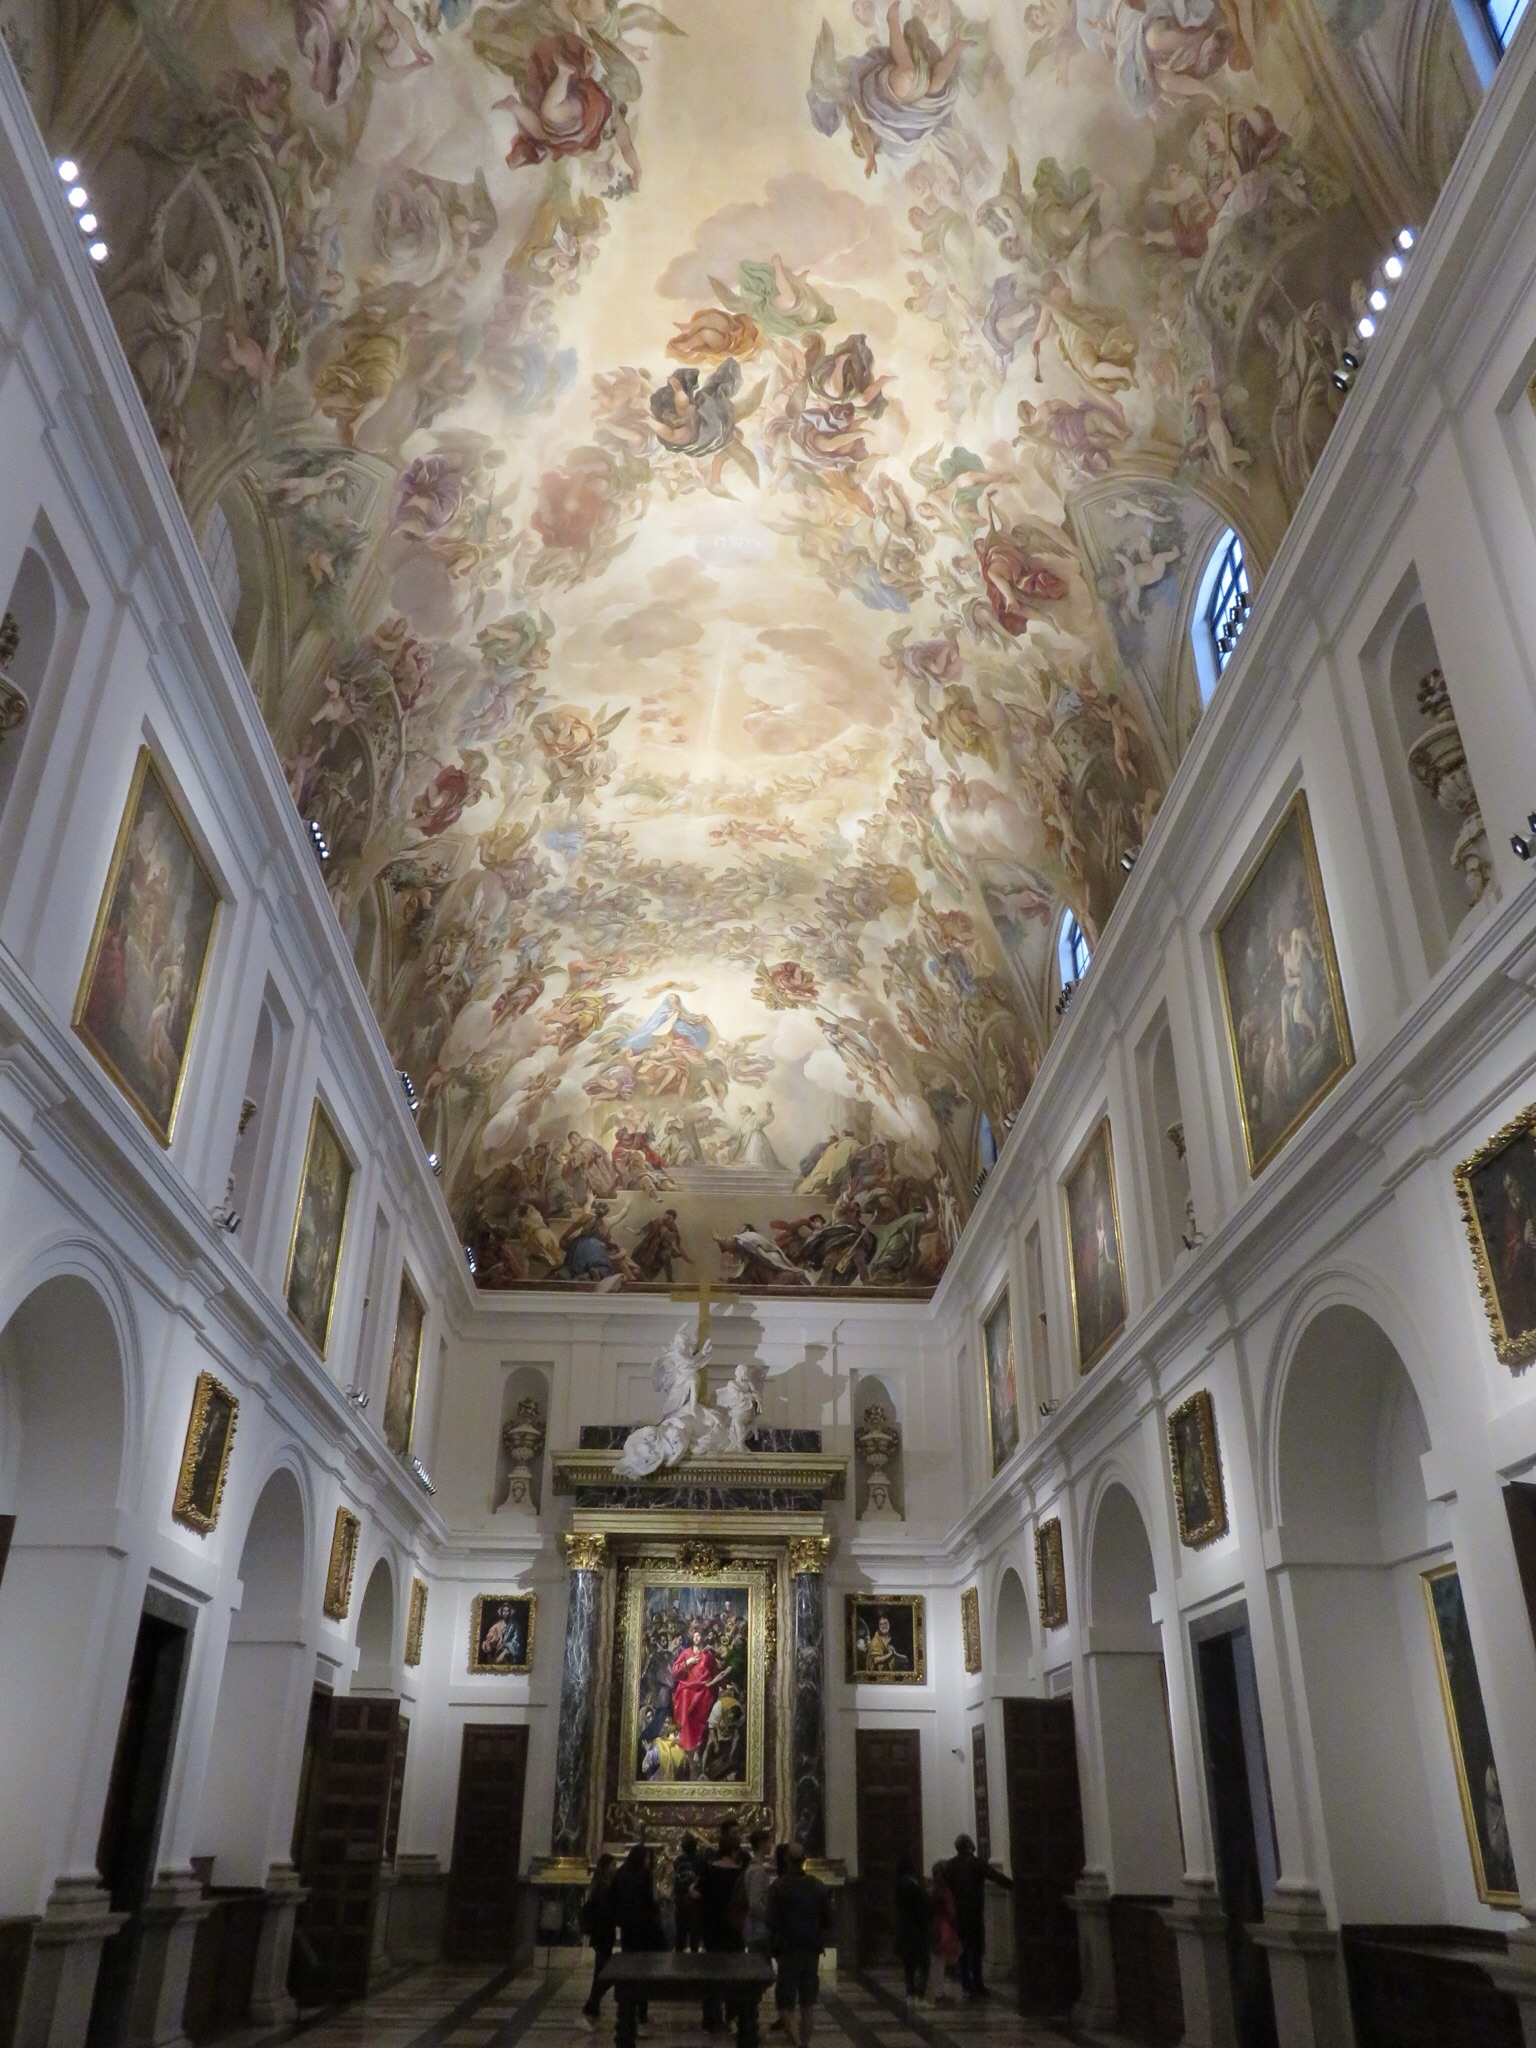 The Sacristy, where priests prepared themselves for Mass, like a small art gallery with works by de Goya, Titian, Velazquez, Bellini, Caravaggio and 19 pieces by El Greco